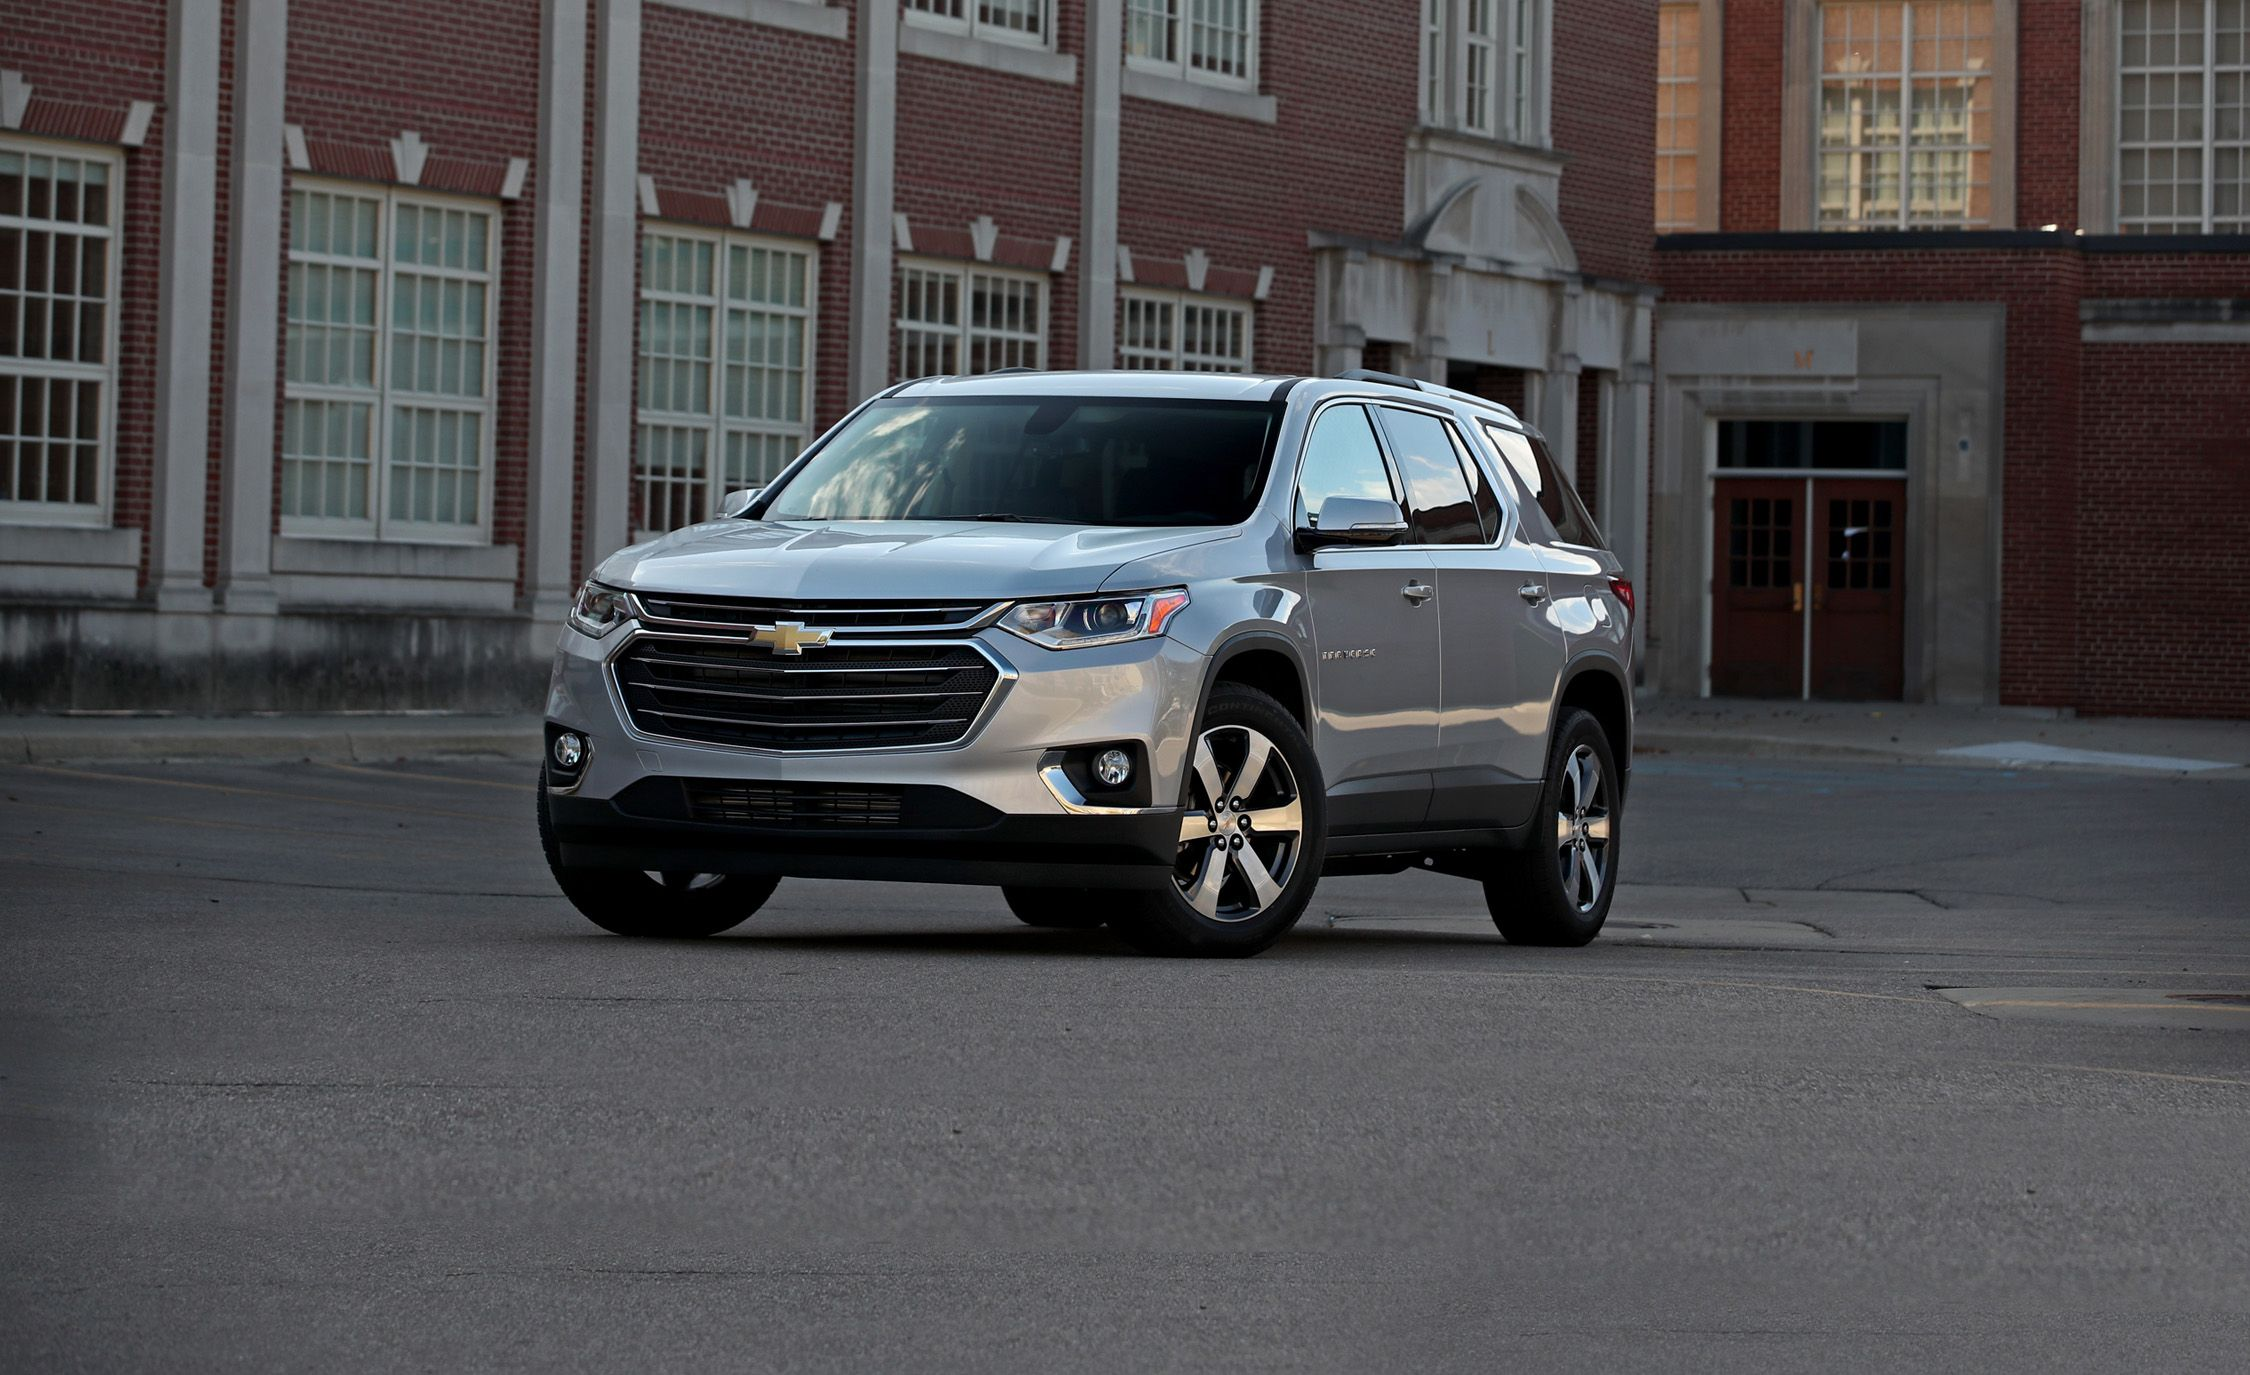 2018 Chevrolet Traverse V-6 FWD